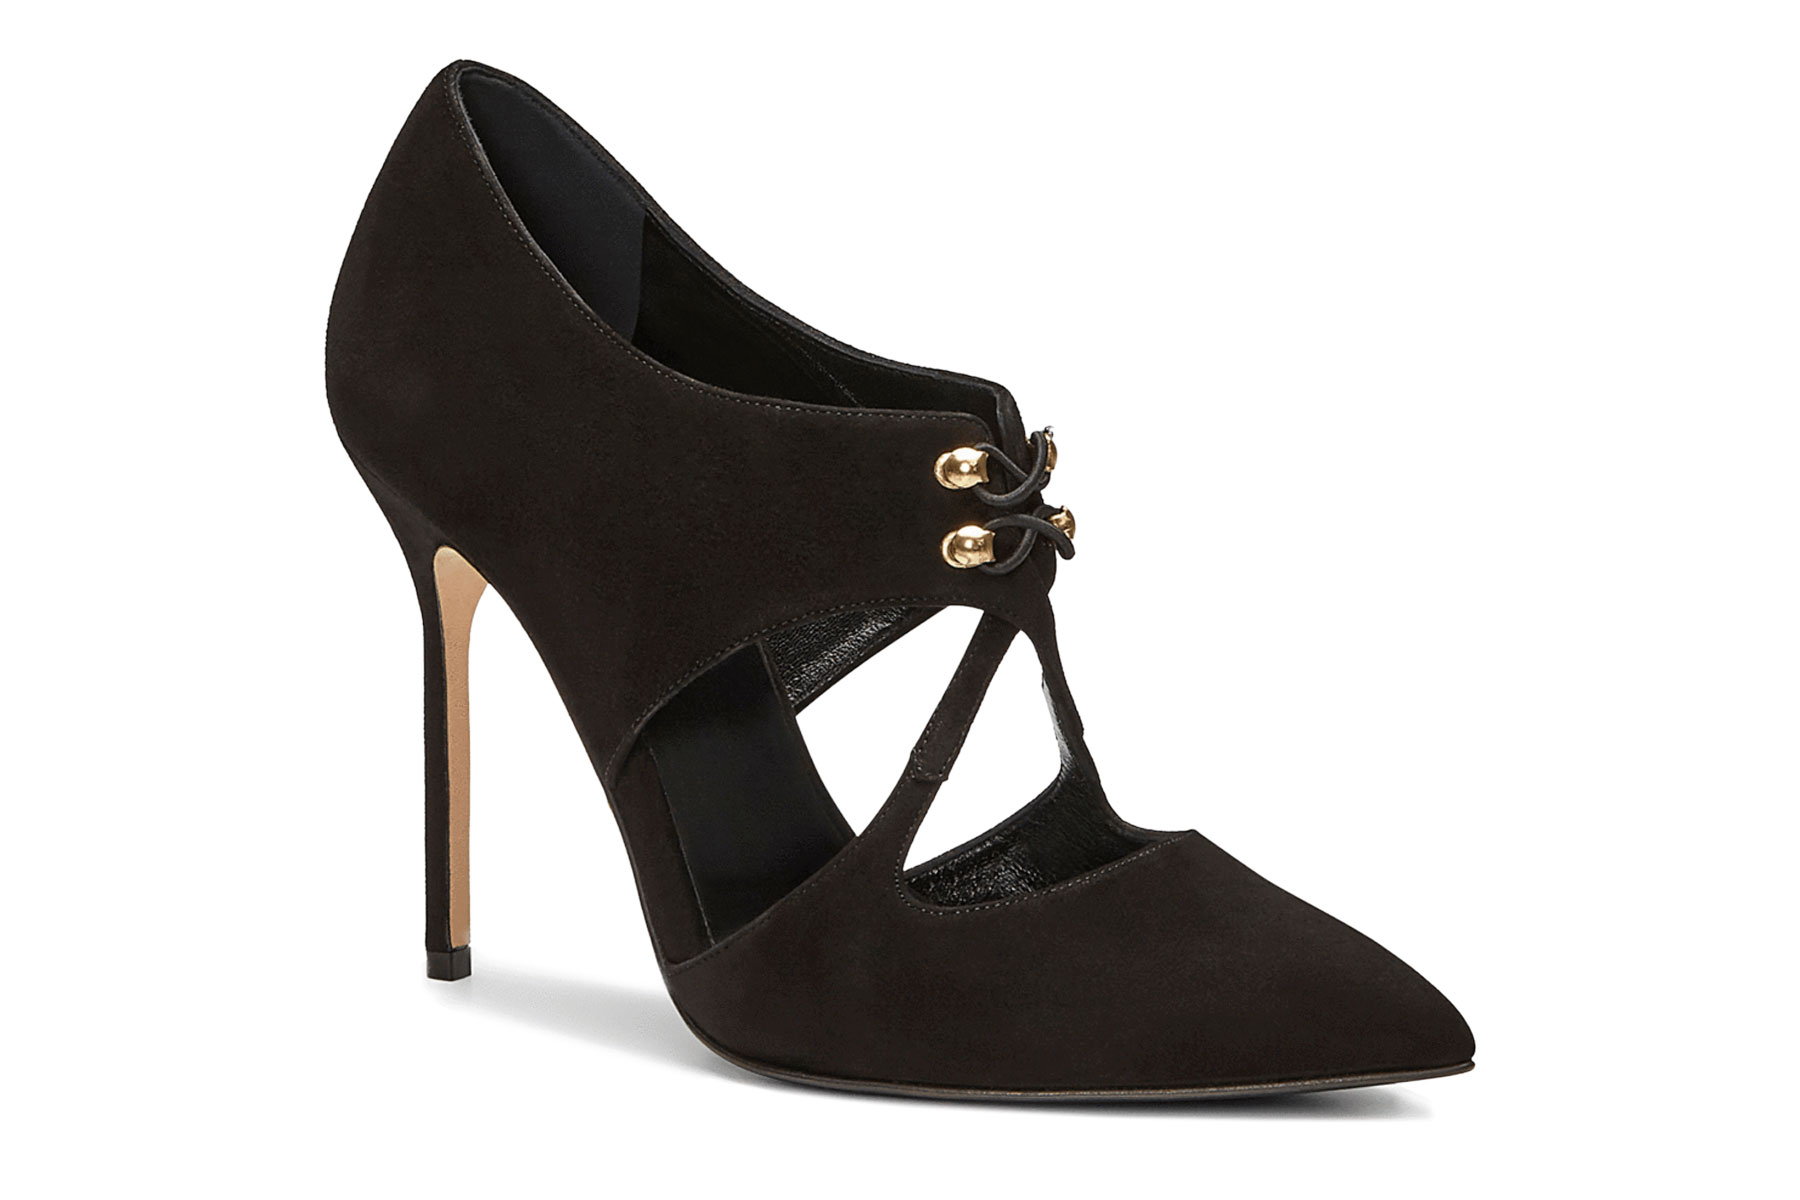 Black closed toe heel